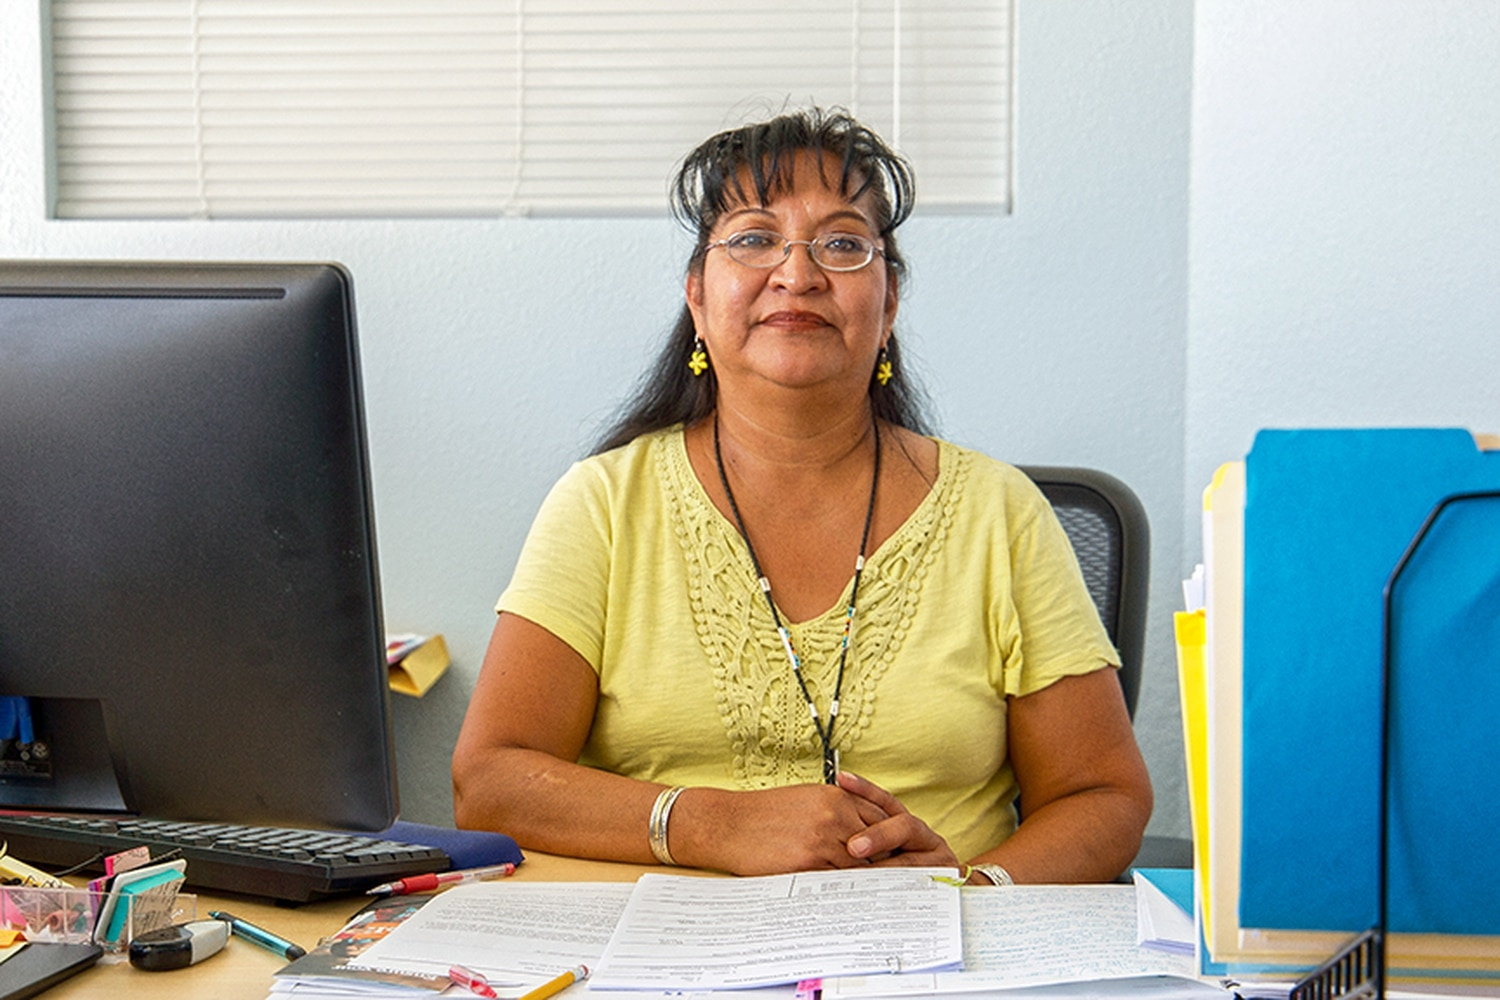 Delight Talawepi helped organize a community survey about Native healthcare.